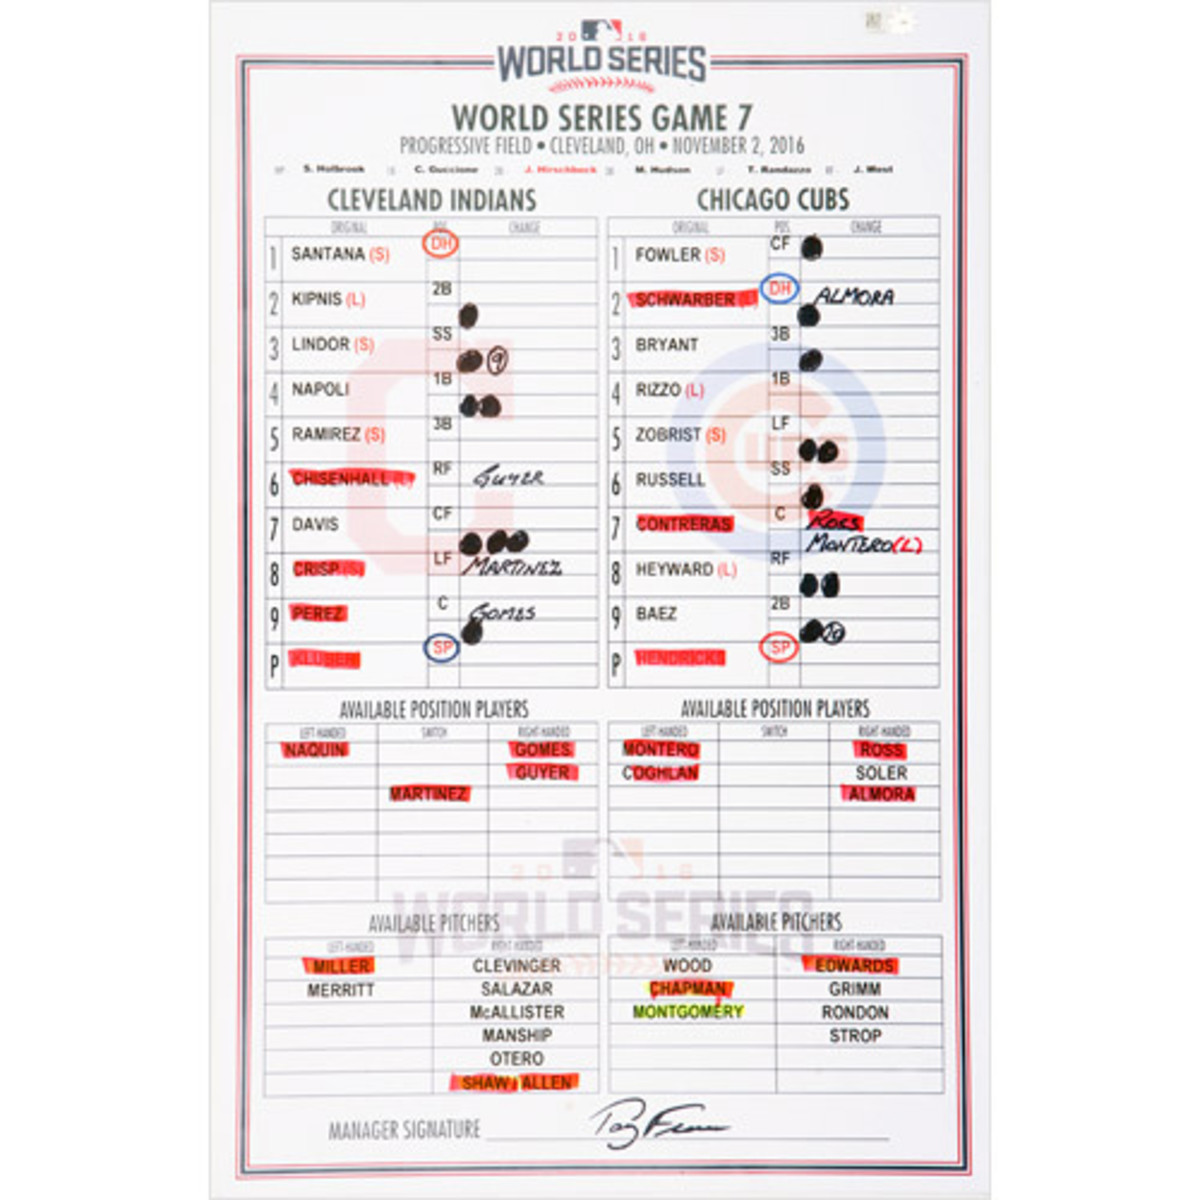 Cleveland dugout card for 2016 World Series Game 7.